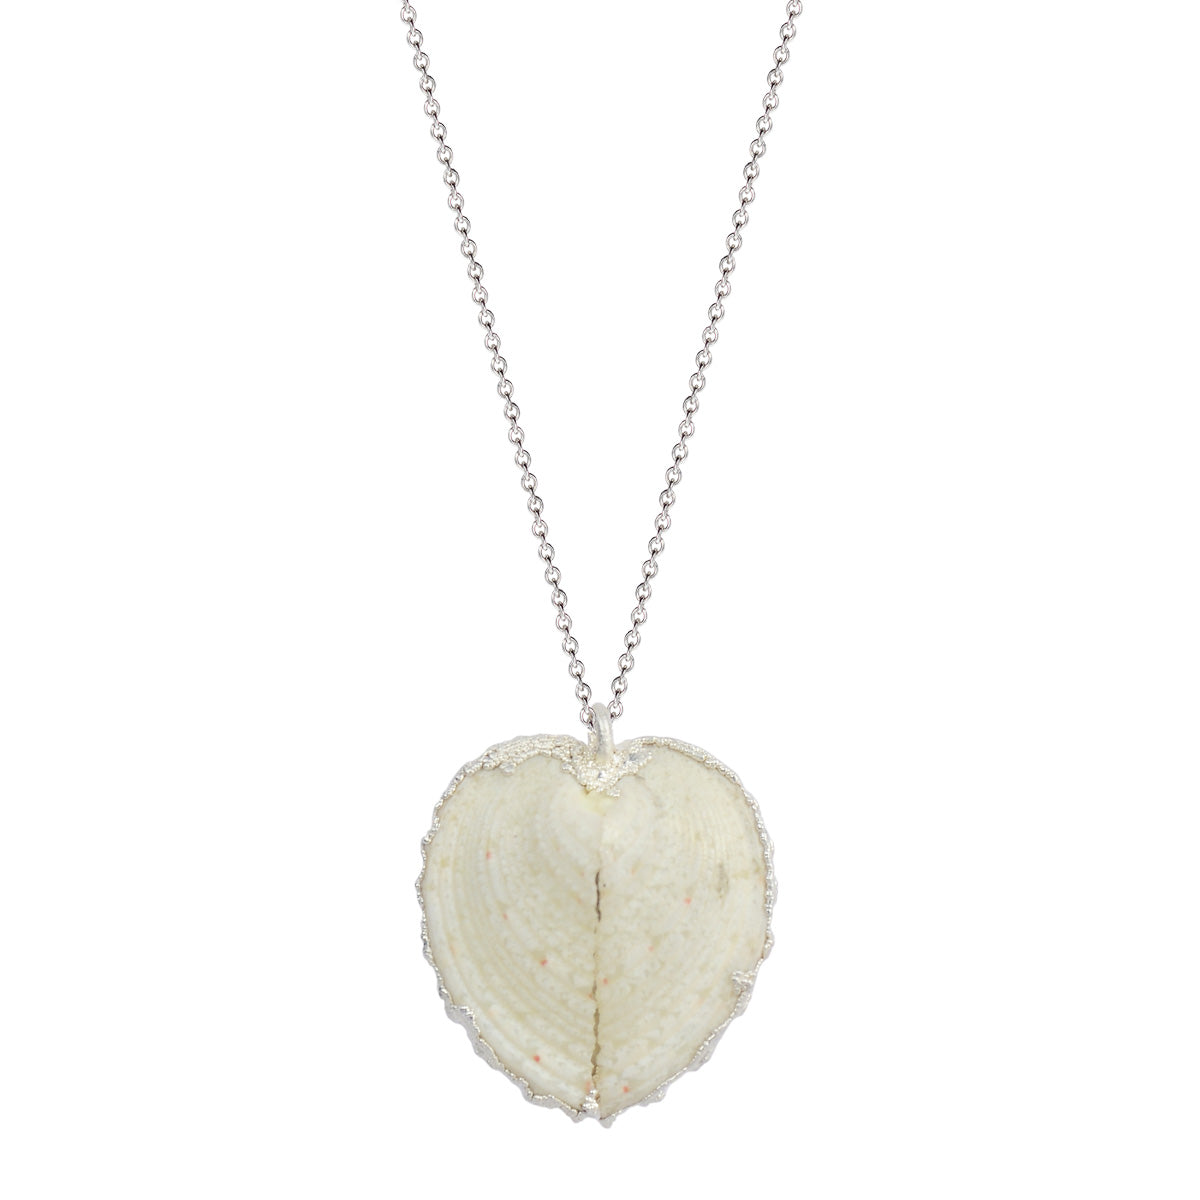 Silver Medium White Heart Shell Pendant